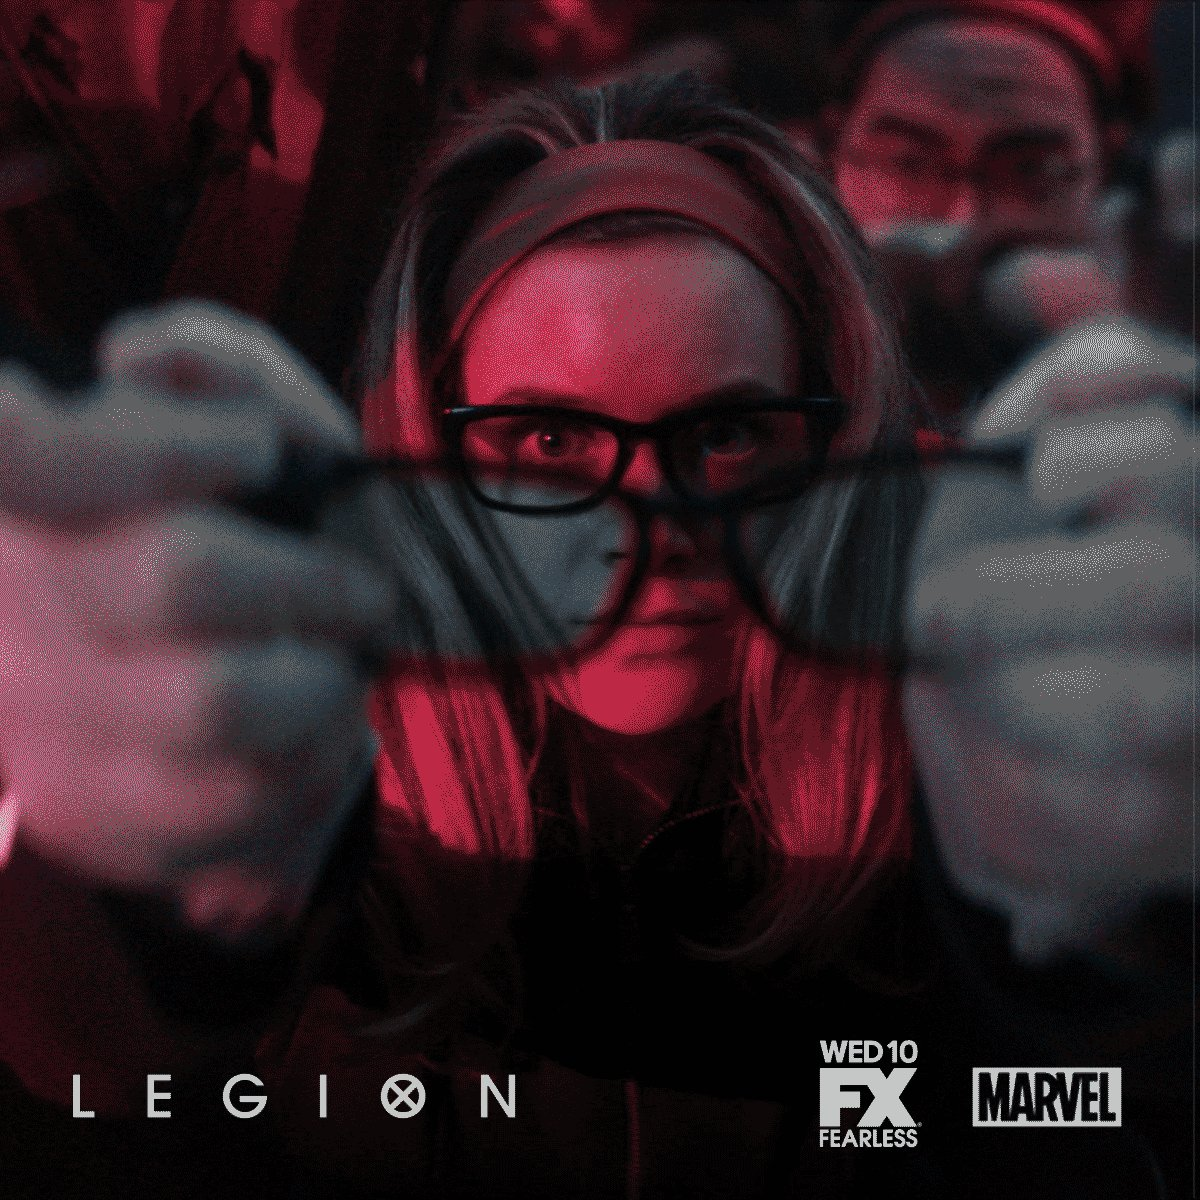 See the truth. #LegionFX https://t.co/oEy5Bm5p9R